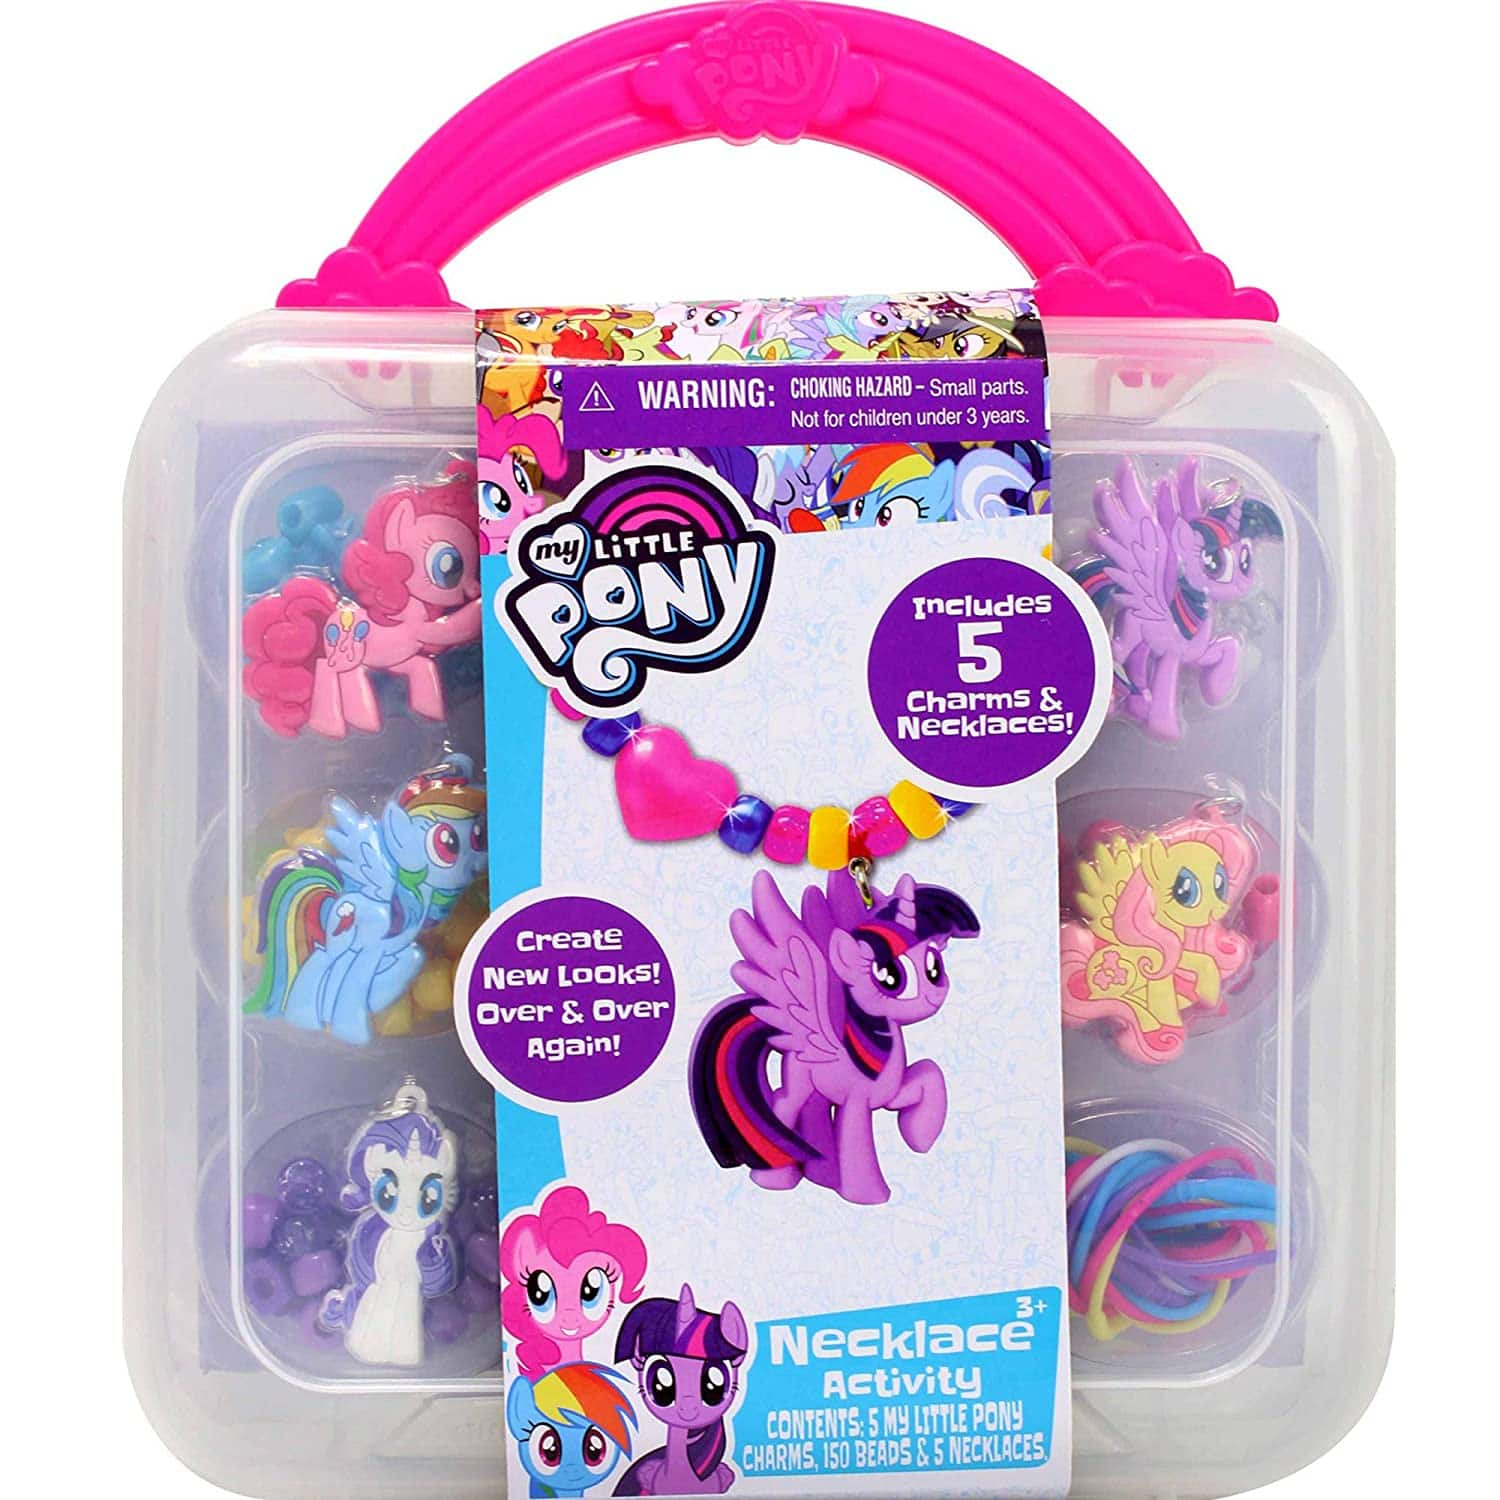 My Little Pony Necklace Activity Set (5 Necklaces) $6.50 + Free Shipping w/ Prime